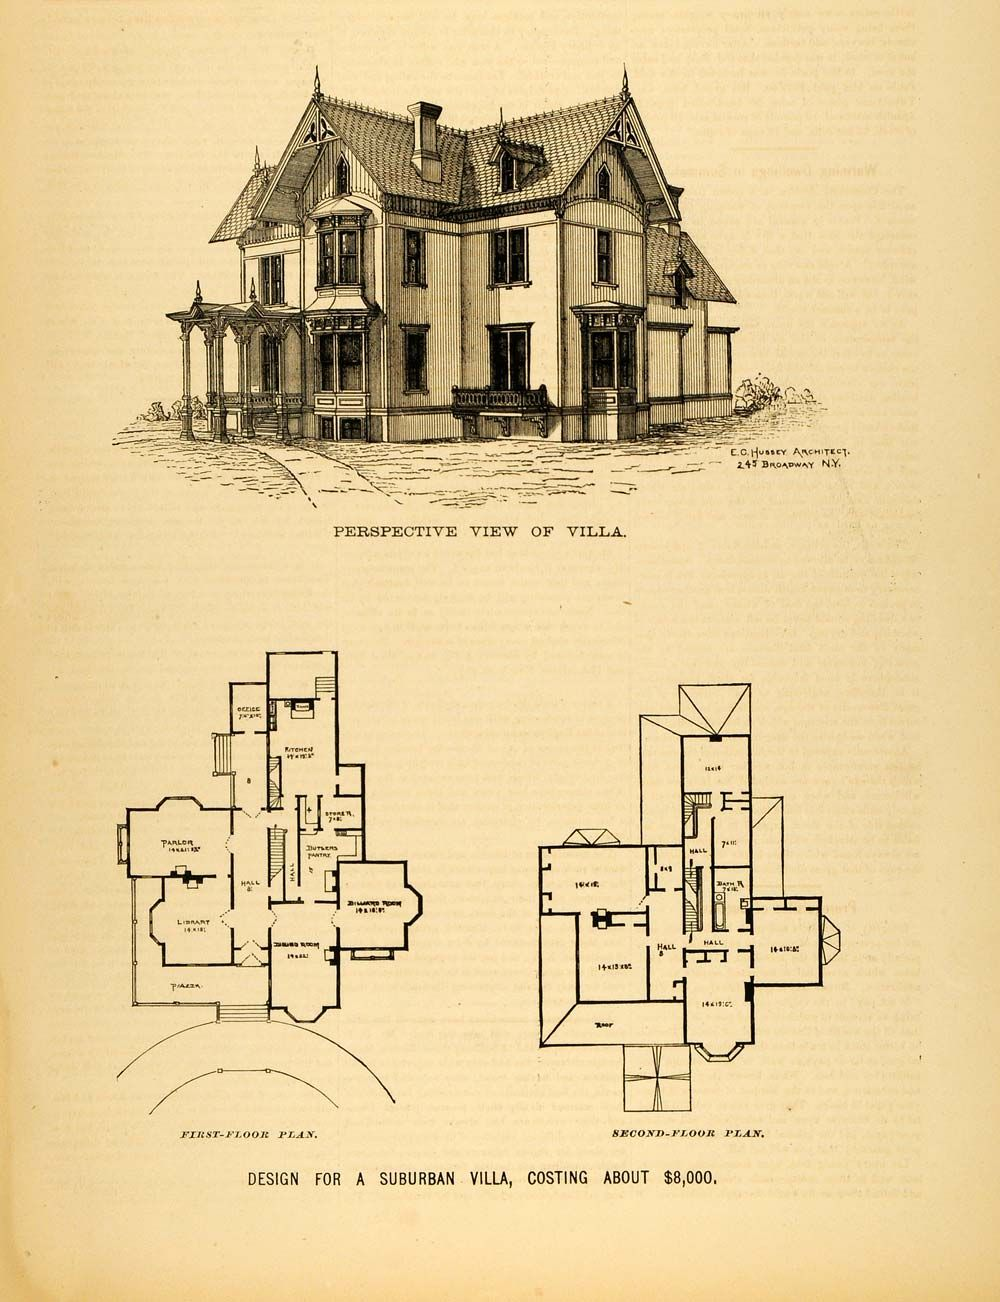 Vintage Architectural Blueprints Pin By Steve Swanat On Projects To Try In 2019 House Plans